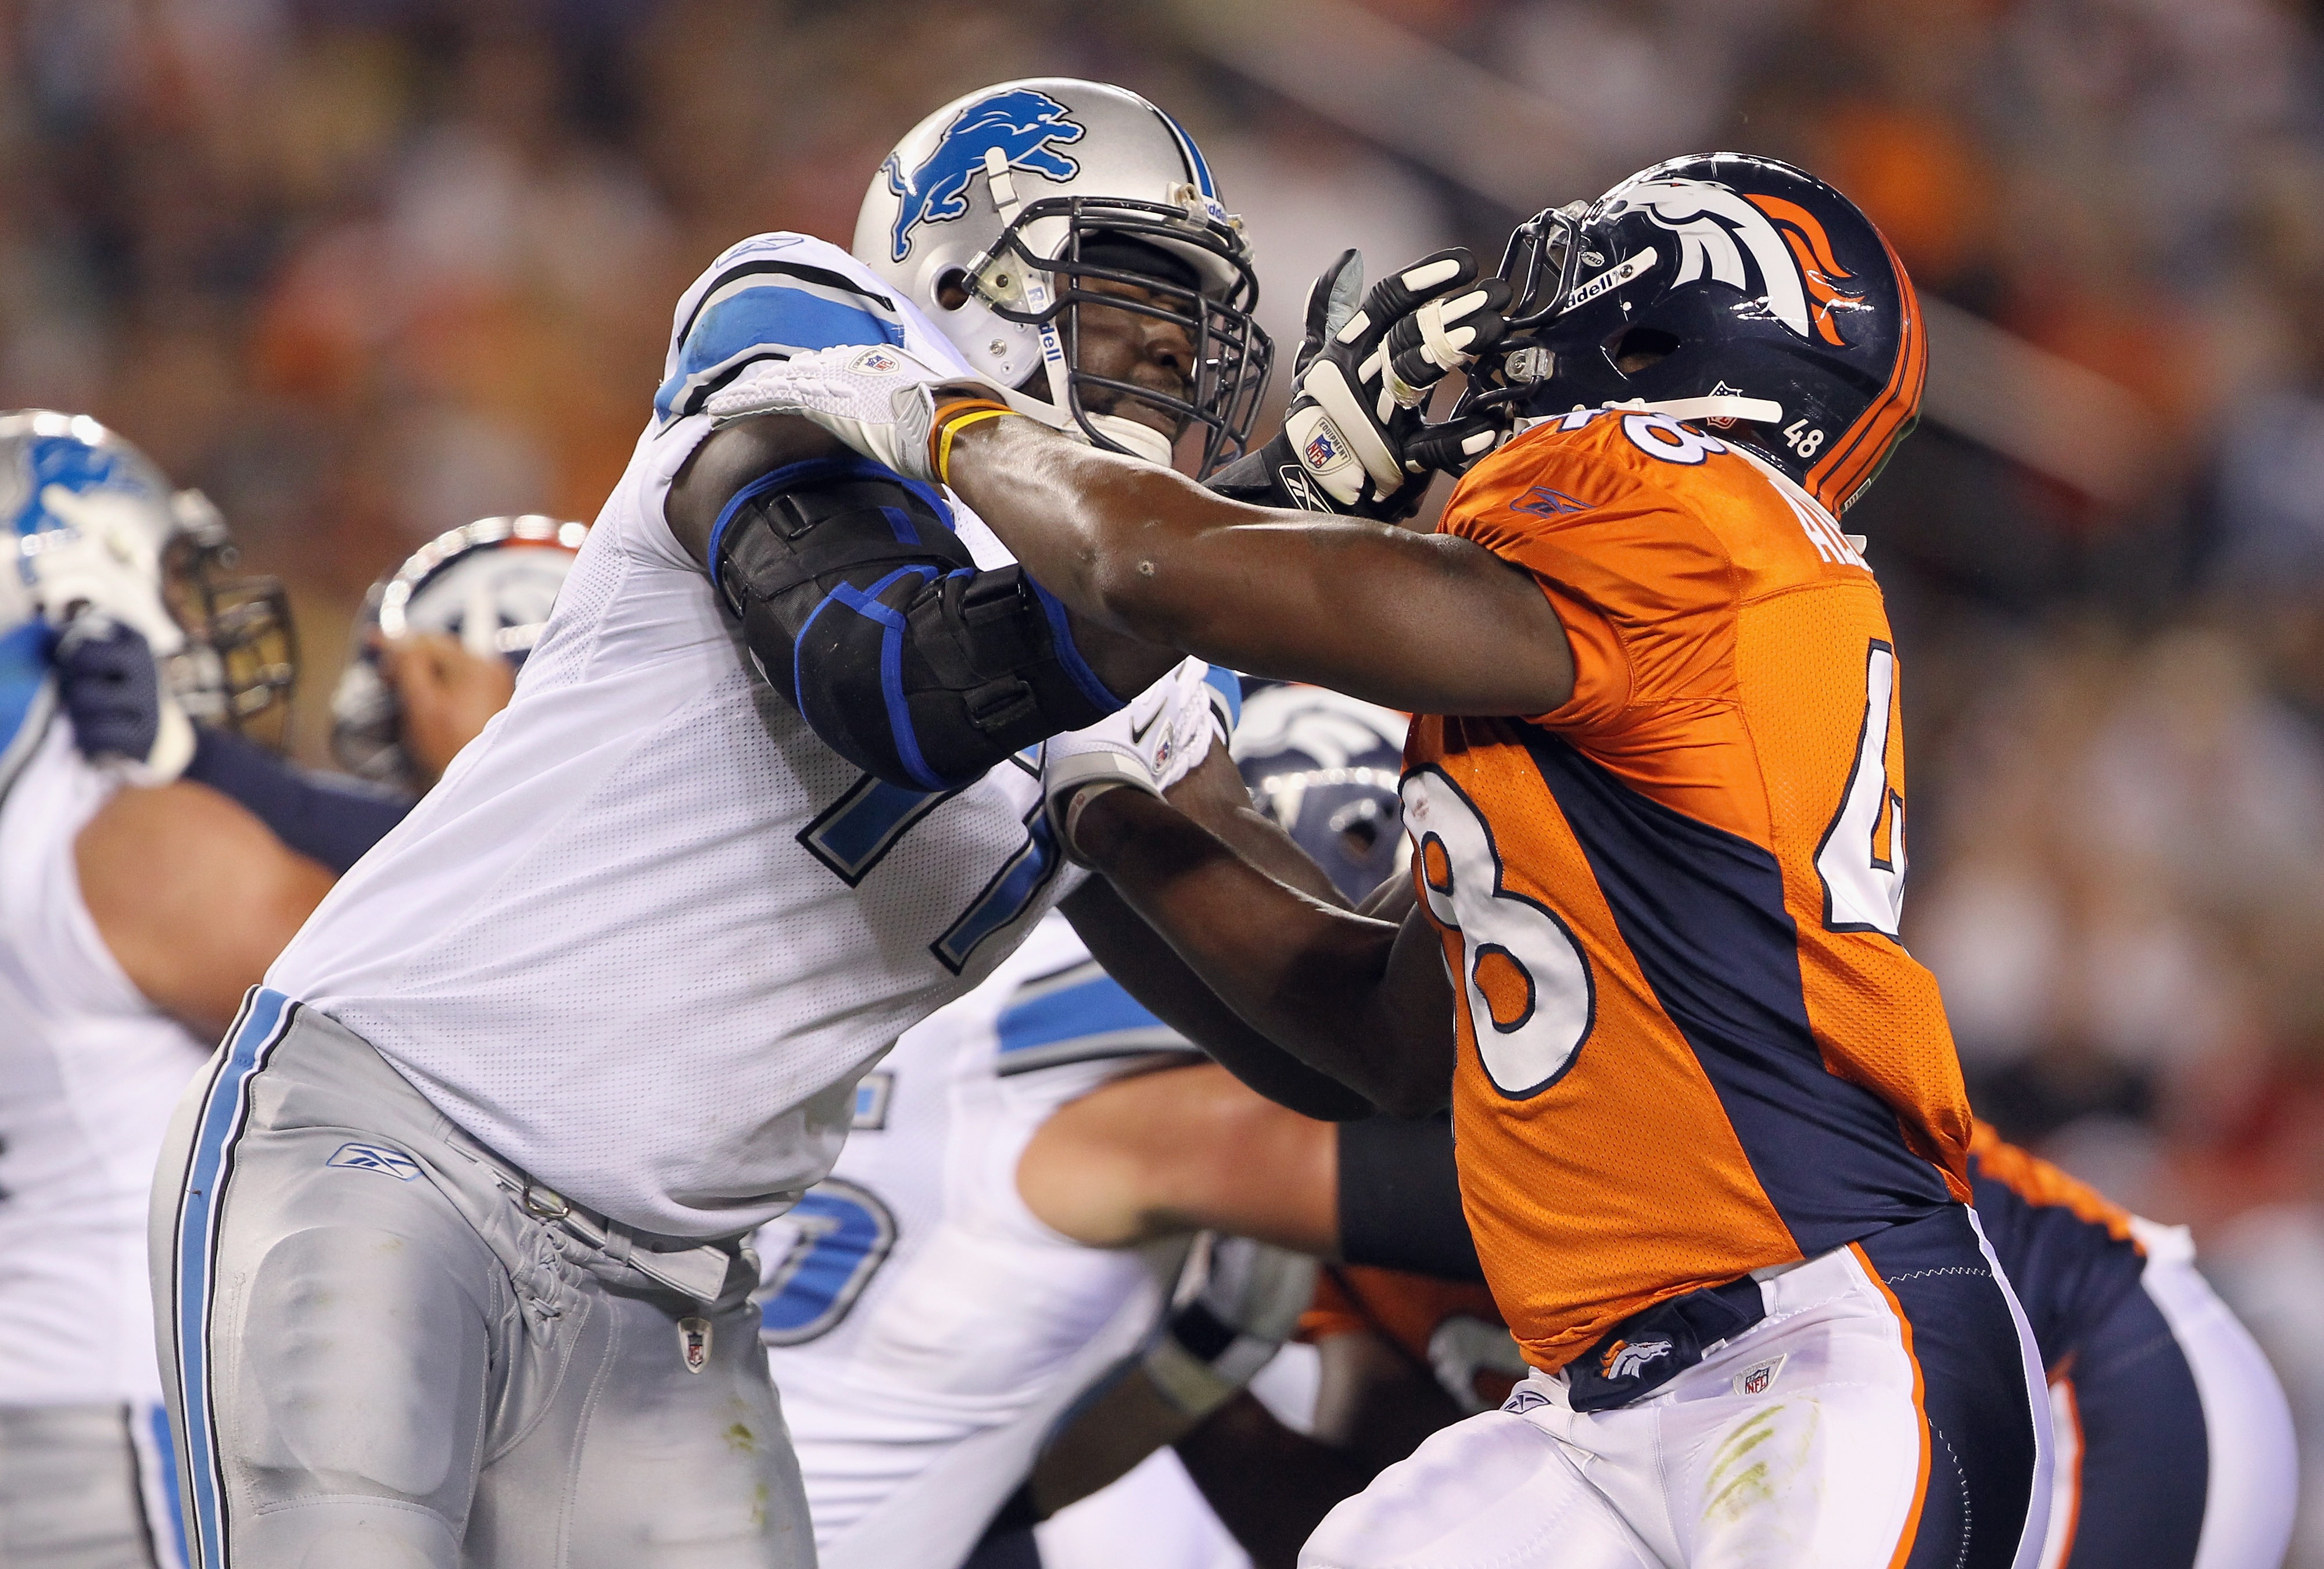 DENVER - AUGUST 21:  Offensive tackle Gosder Cherilus #77 of the Detroit Lions blocks the rush of Kevin Alexander #48 of the Denver Broncos during preseason NFL action at INVESCO Field at Mile High on August 21, 2010 in Denver, Colorado. The Lions defeate